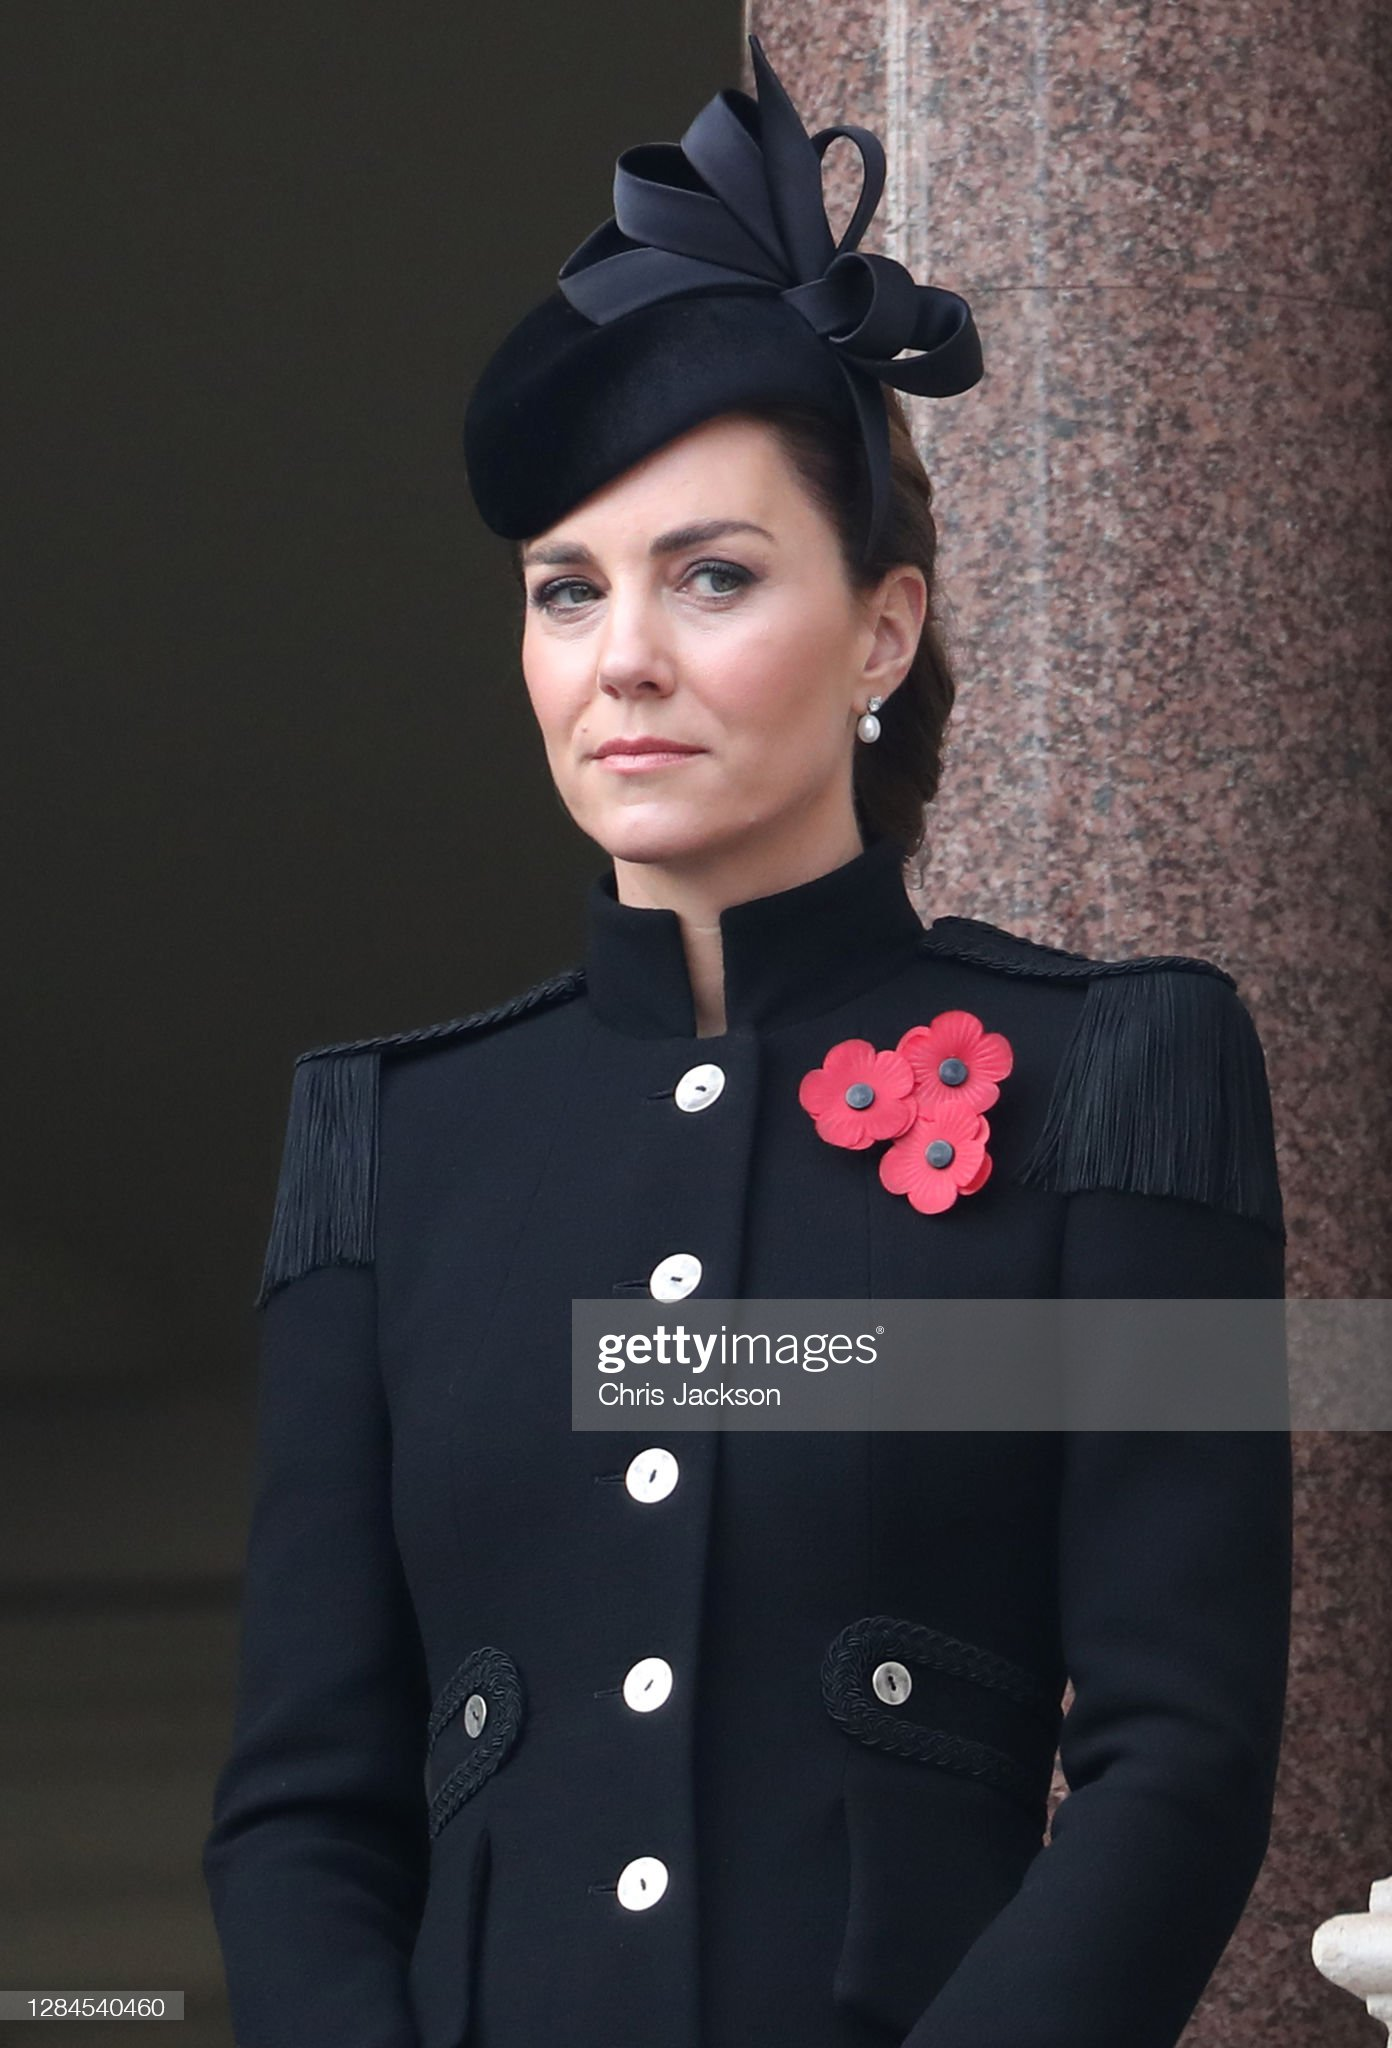 https://media.gettyimages.com/photos/catherine-duchess-of-cambridge-during-the-national-service-of-at-the-picture-id1284540460?s=2048x2048